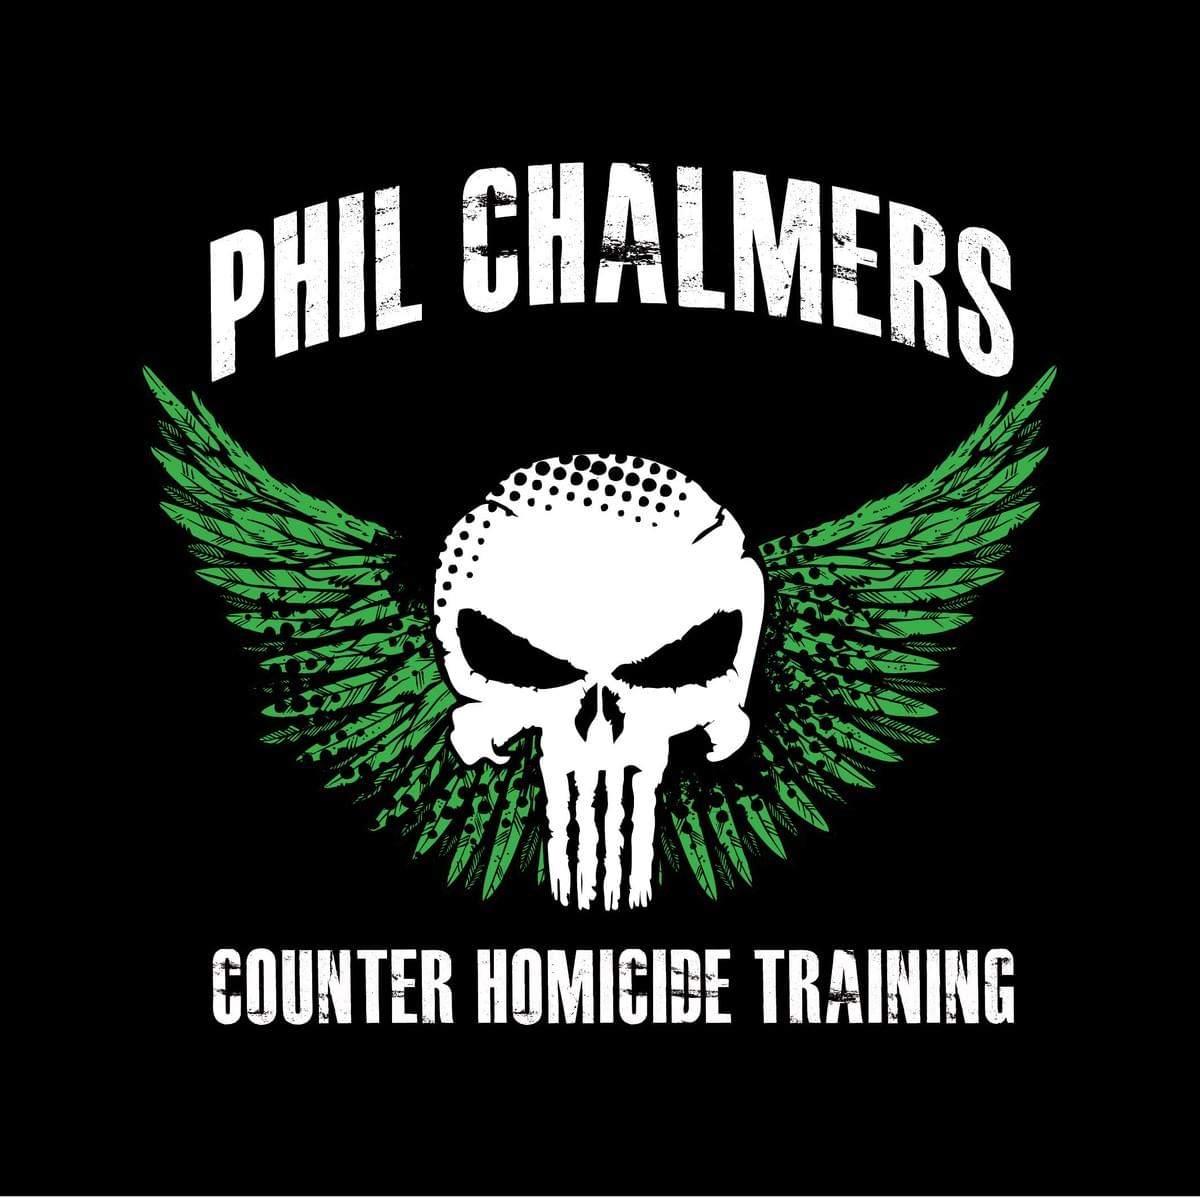 Phil Chalmers Counter Homicide Trainer